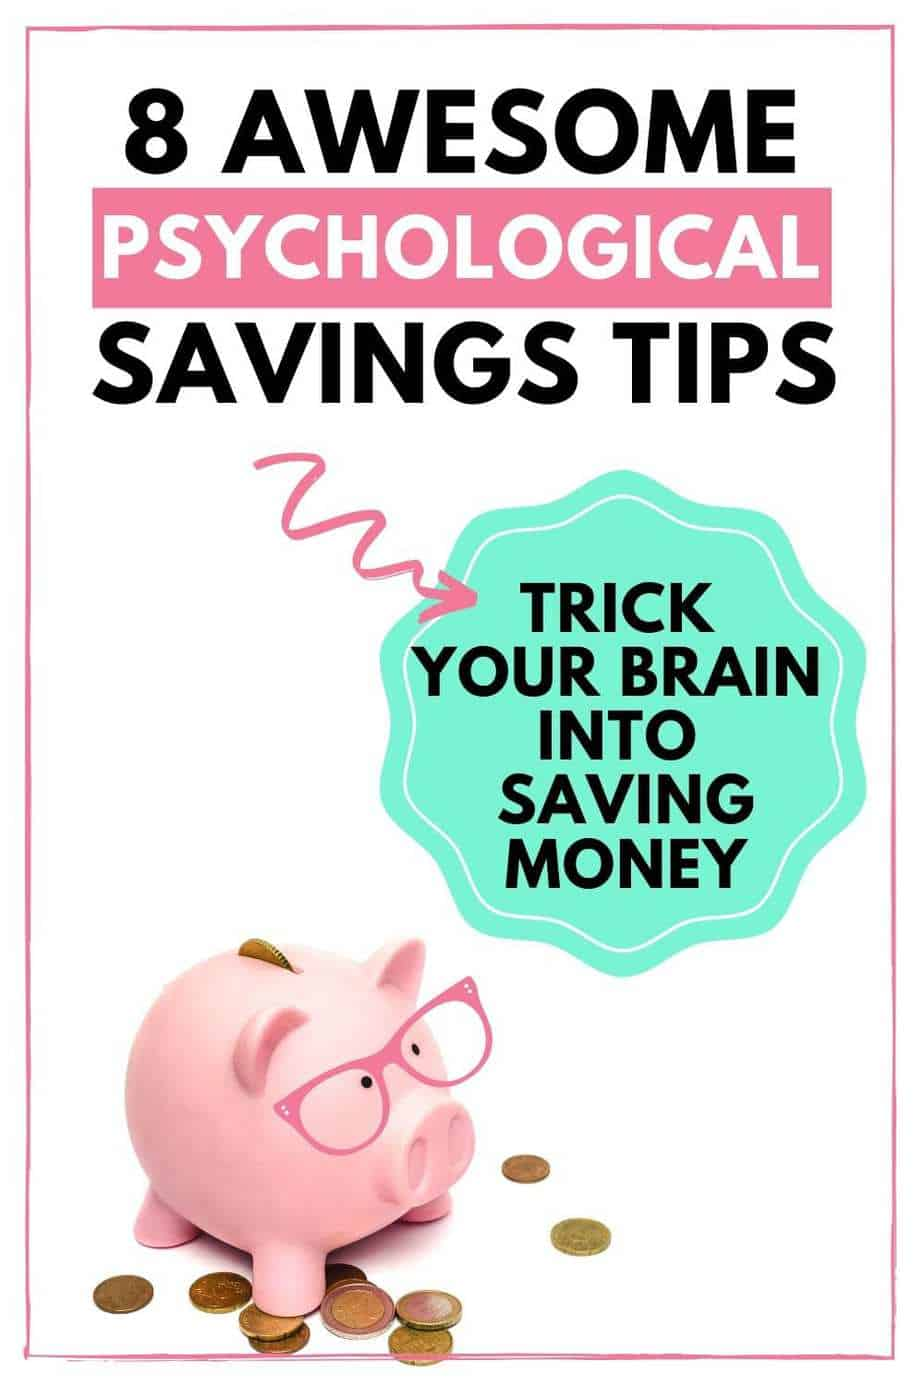 8 awesome psychological savings tips